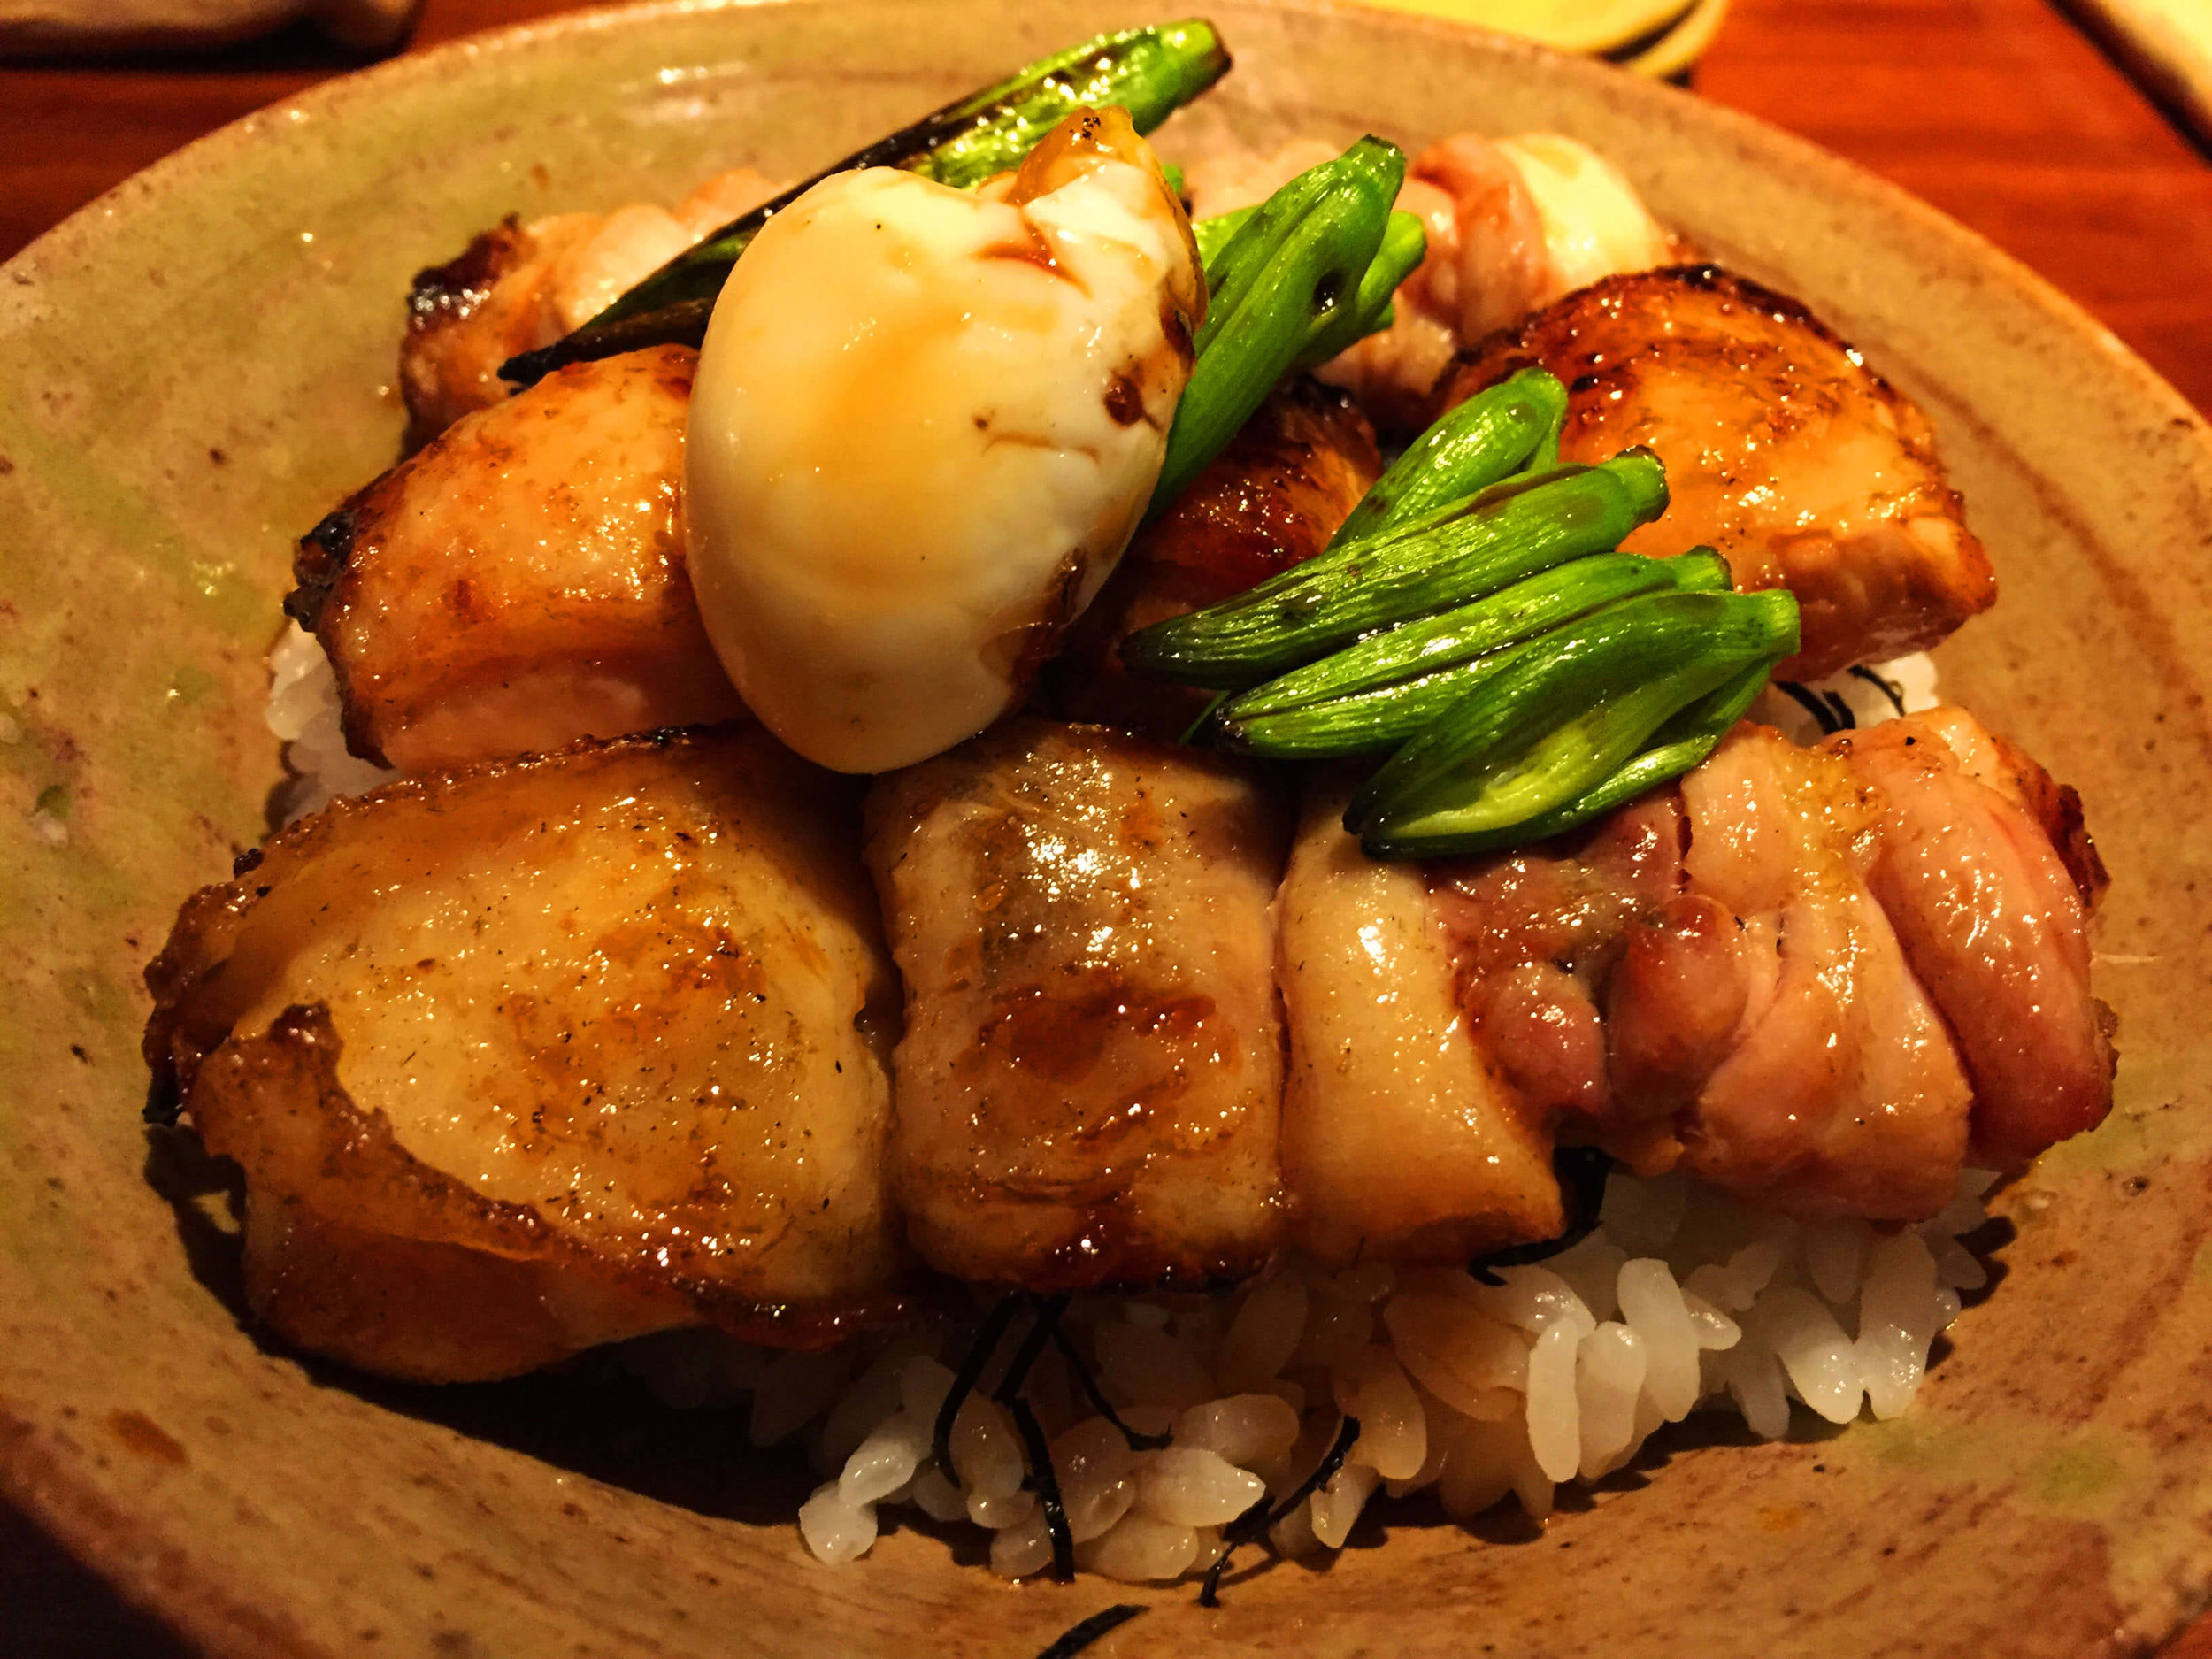 Eating Yakitori and rice which is called yakiudon